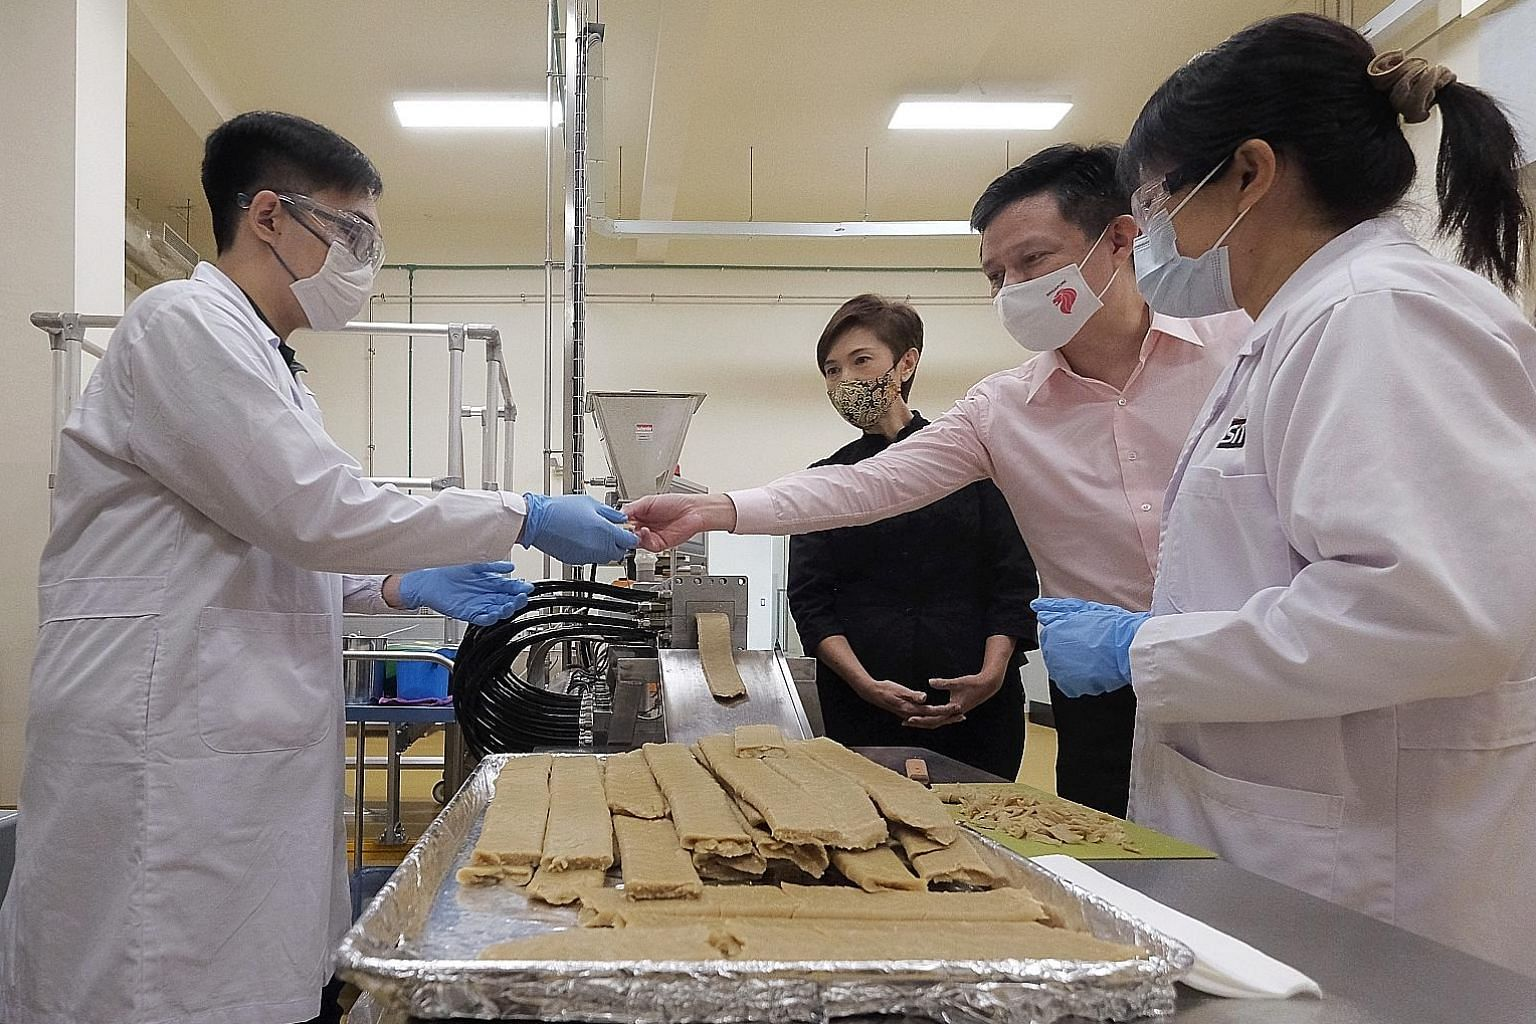 Minister for Trade and Industry Chan Chun Sing and Minister for Manpower Josephine Teo watching as an extruder machine made mock meat during a tour of food manufacturer KH Roberts' facility yesterday. The food manufacturing and service industry is ex